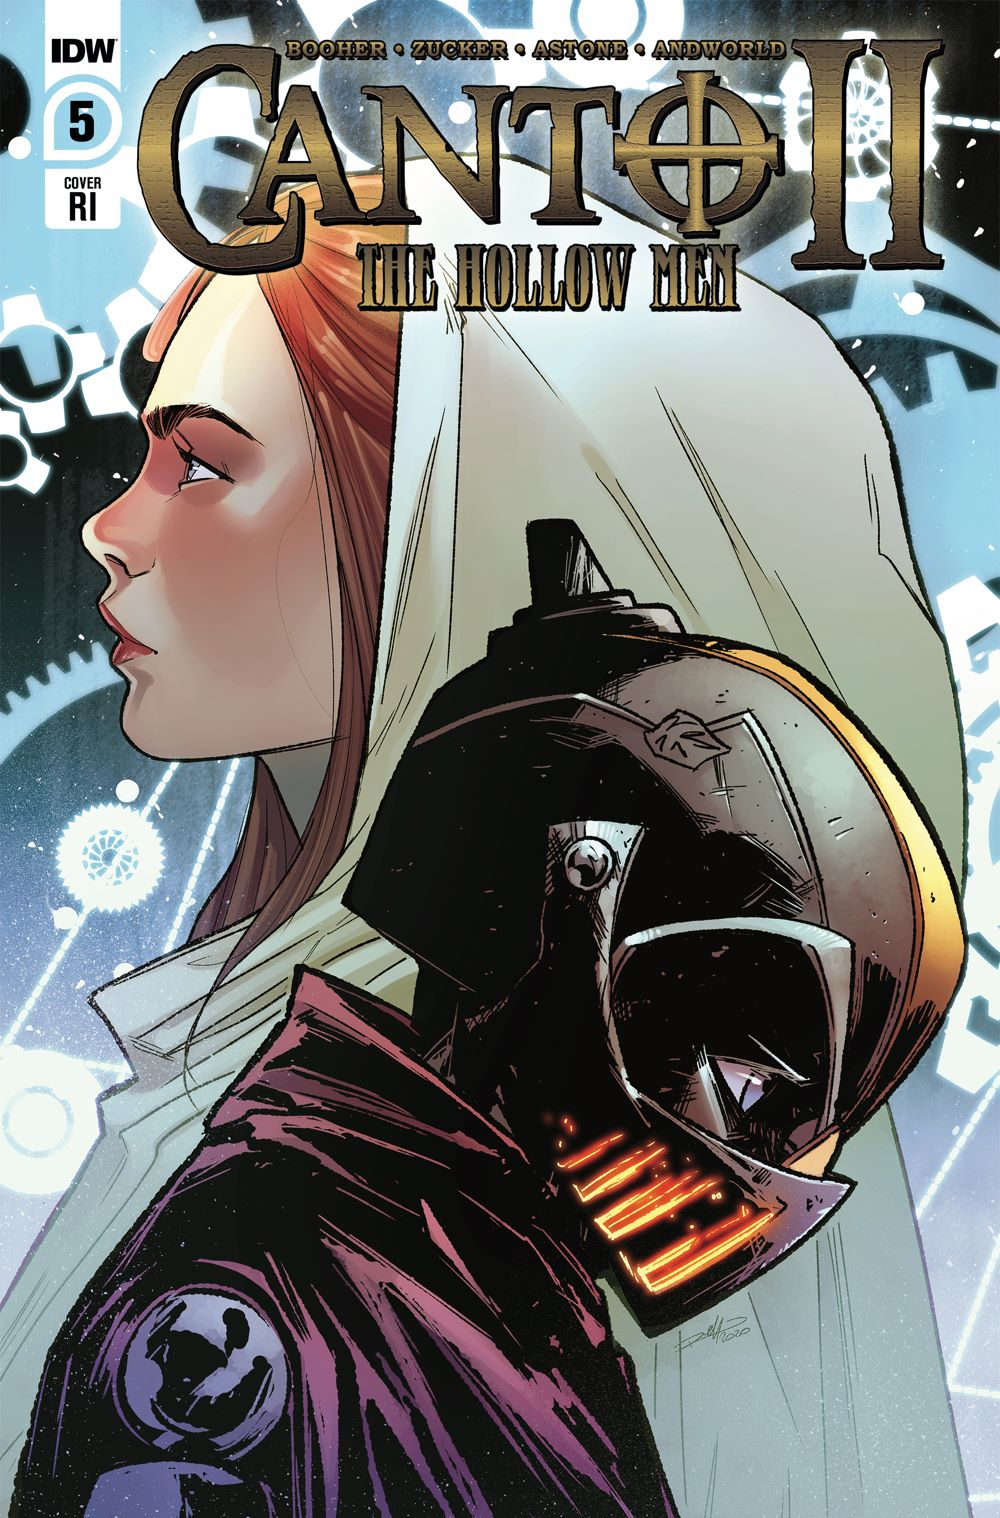 Canto-HM05_cvrRI ComicList: IDW Publishing New Releases for 02/03/2021